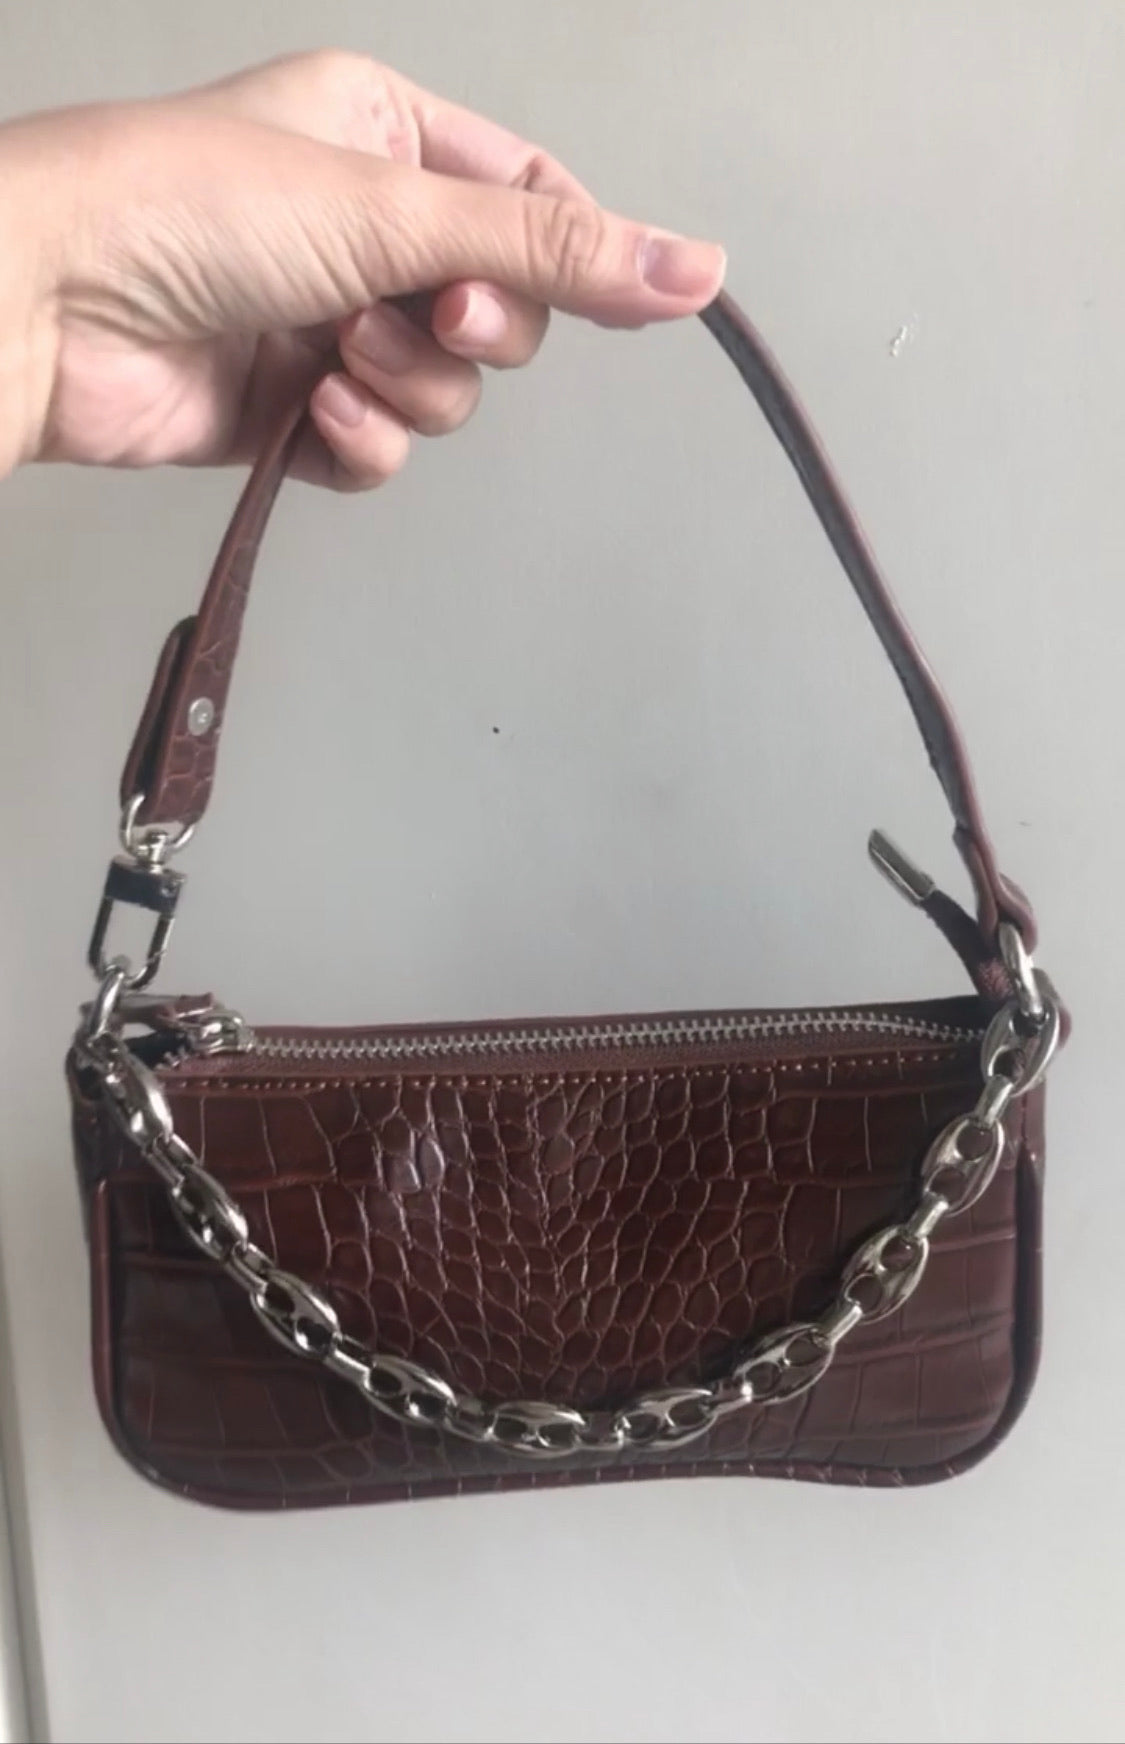 Umber Chain Baguette Bag by Veronique